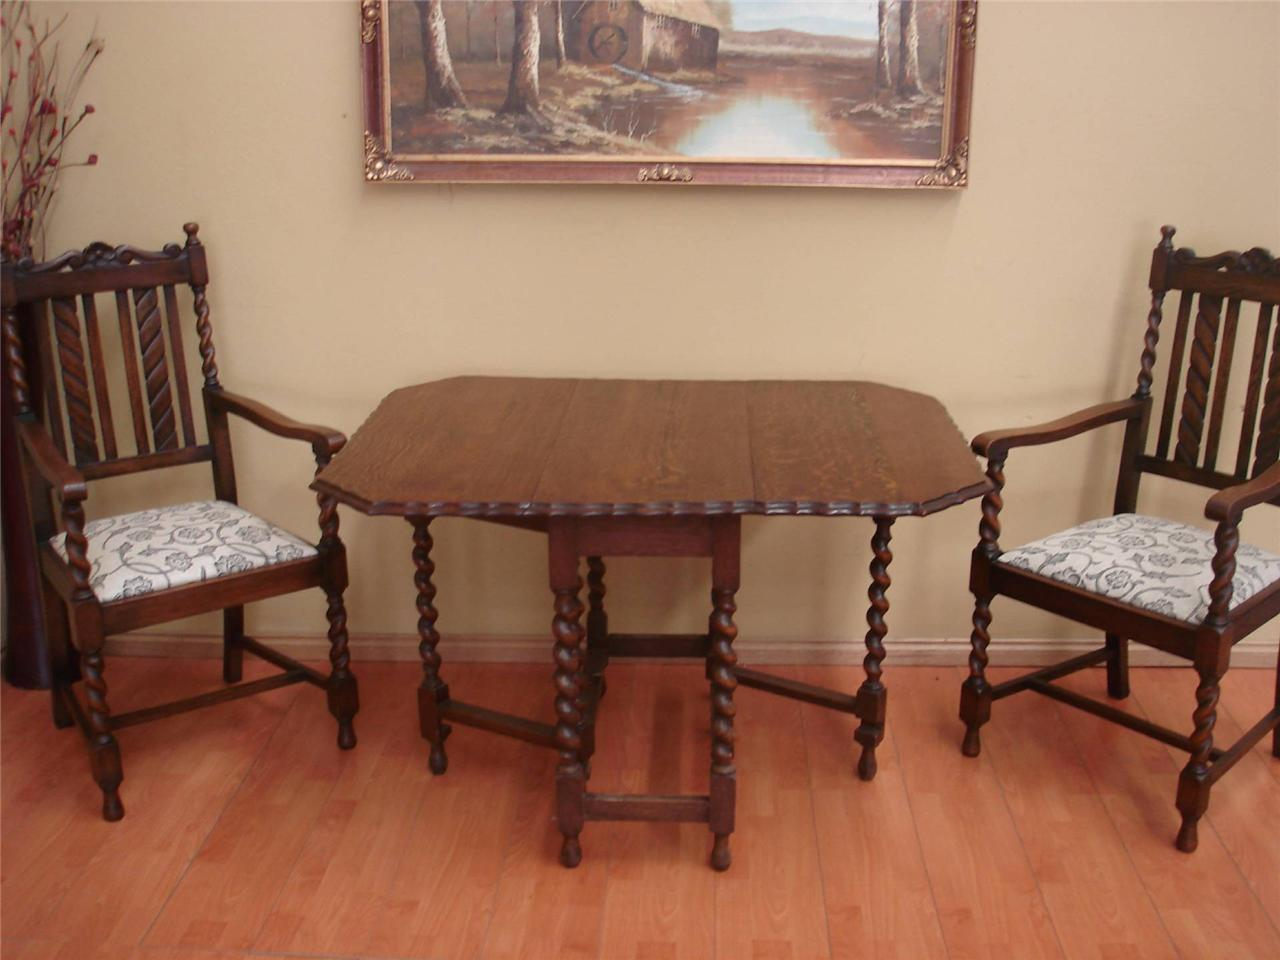 Antique oak barley twist drop side dining room table 4 for Dining room table 4 seater